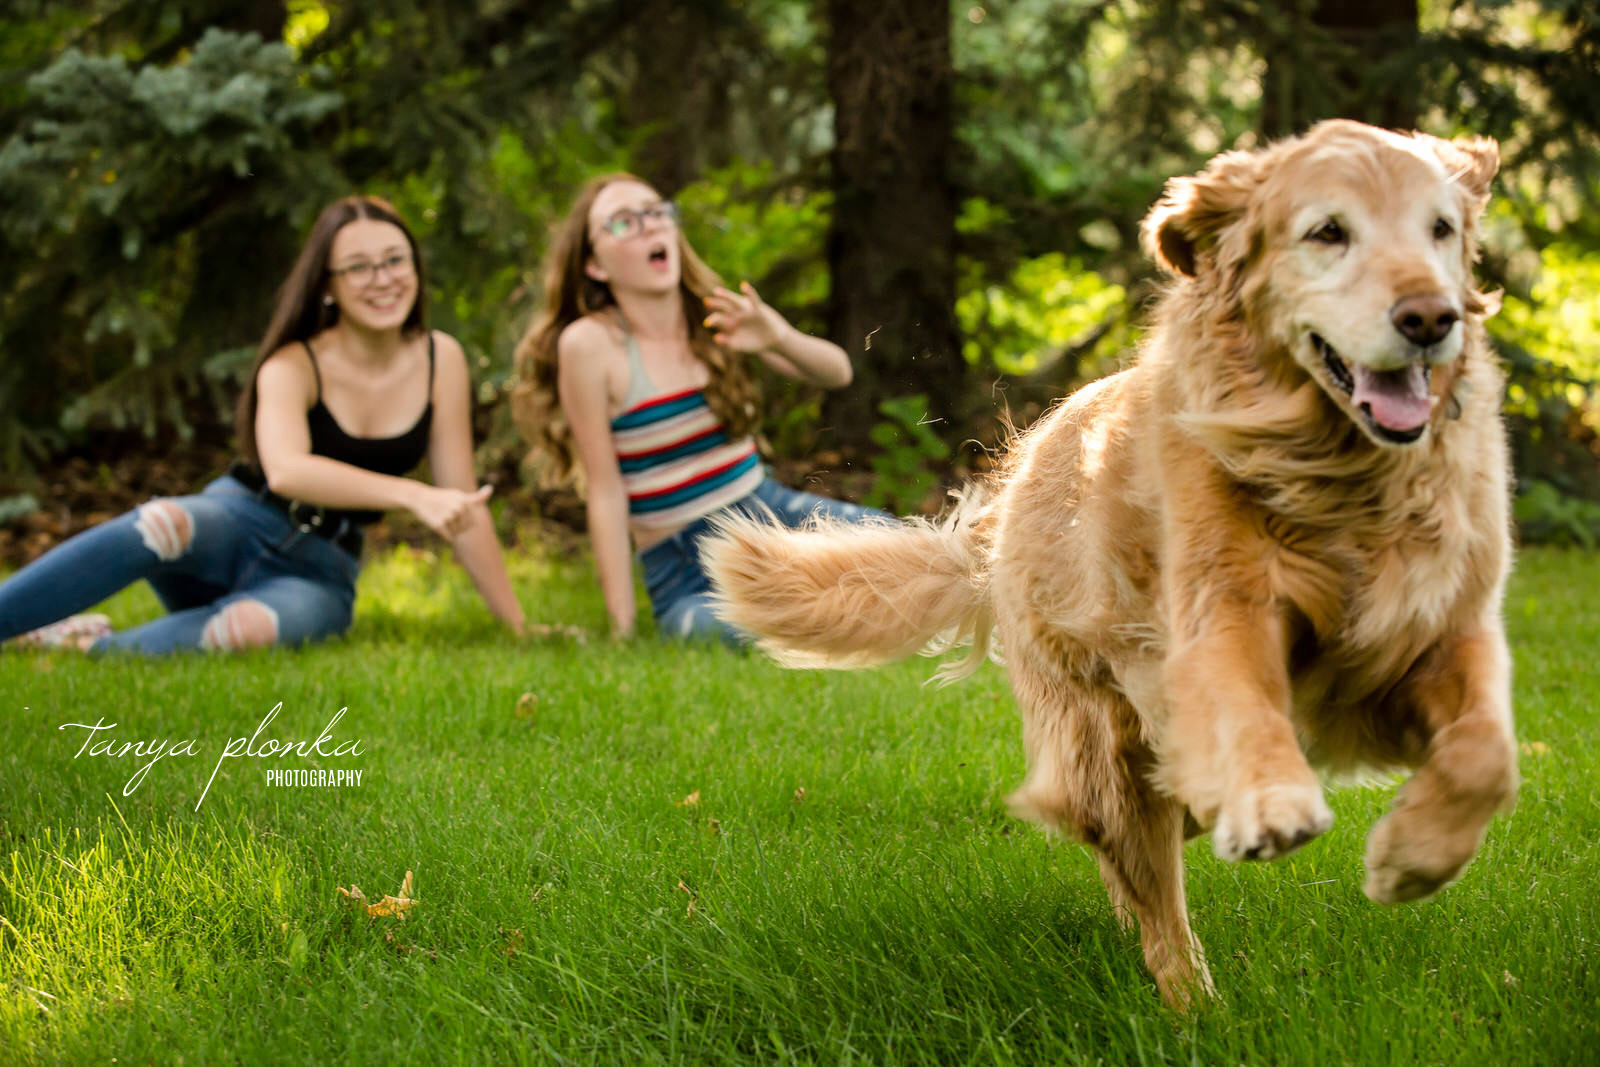 golden retriever runs towards camera while girls in background look surprised